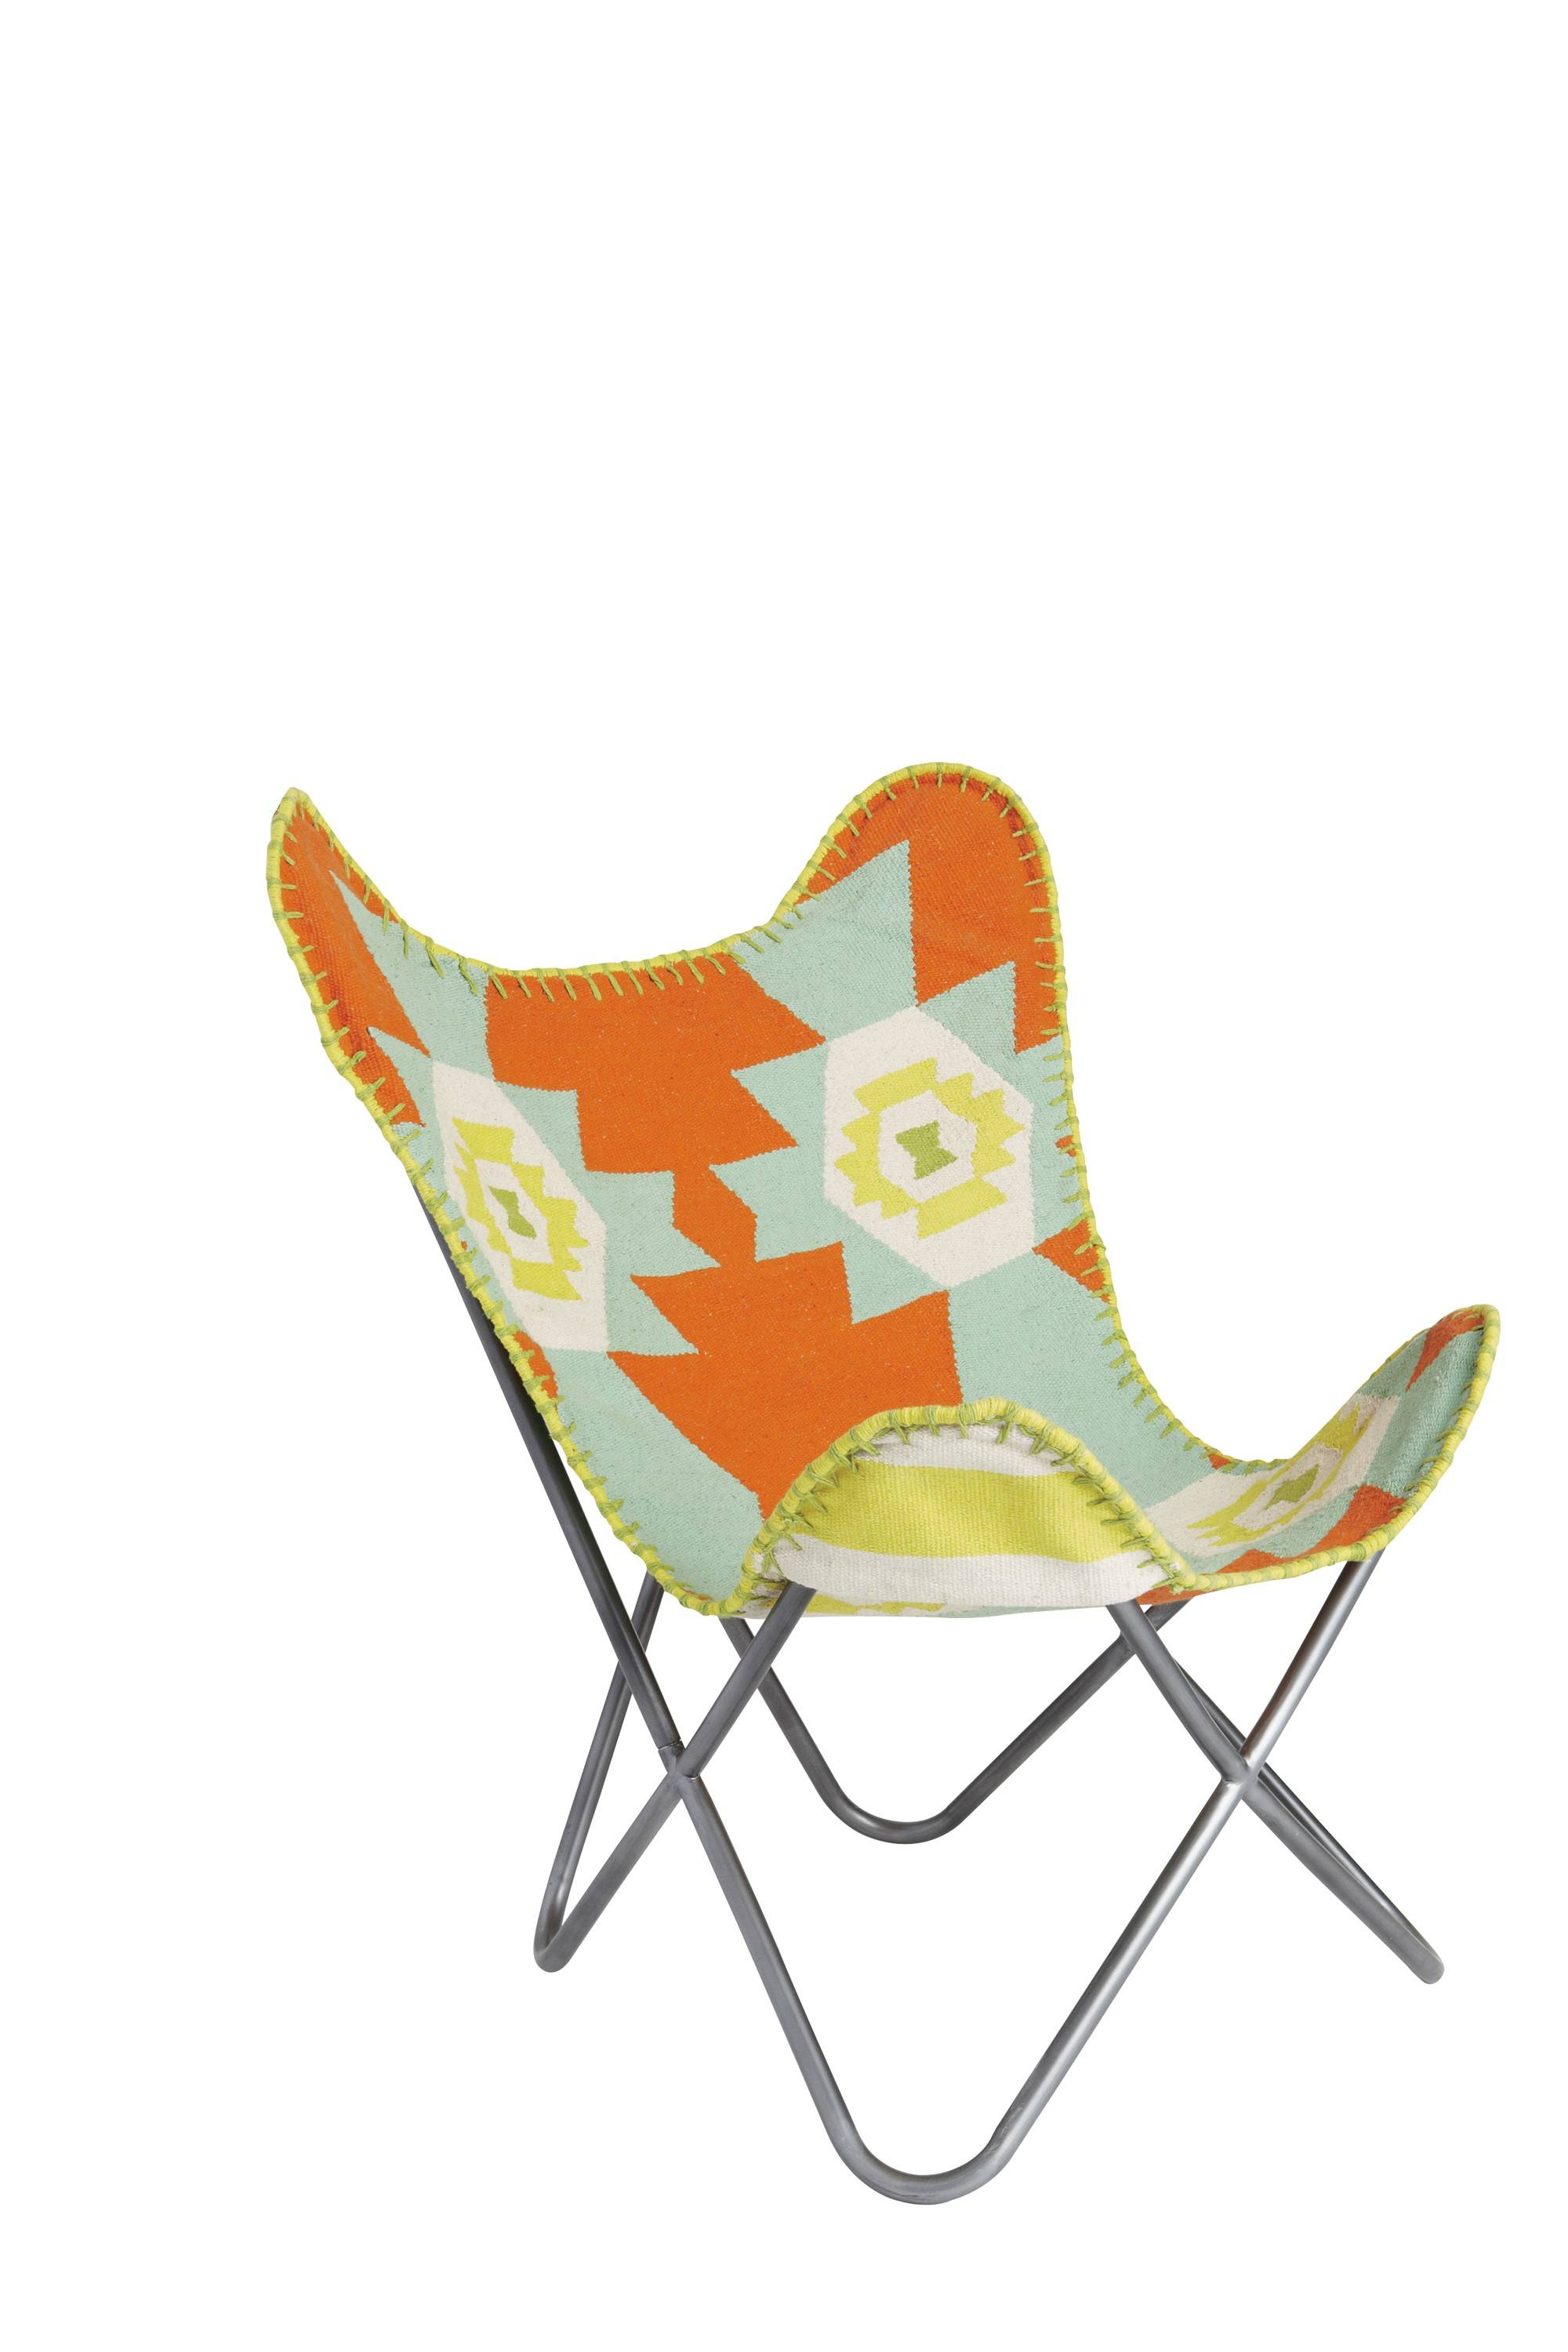 "Brooklyn-based designer Aelfie Oudghiri puts a contemporary spin on the iconic ""butterfly"" chair by covering it in a flatweave dhurrie in California-beachfront hues of aqua, white and sunny orange."